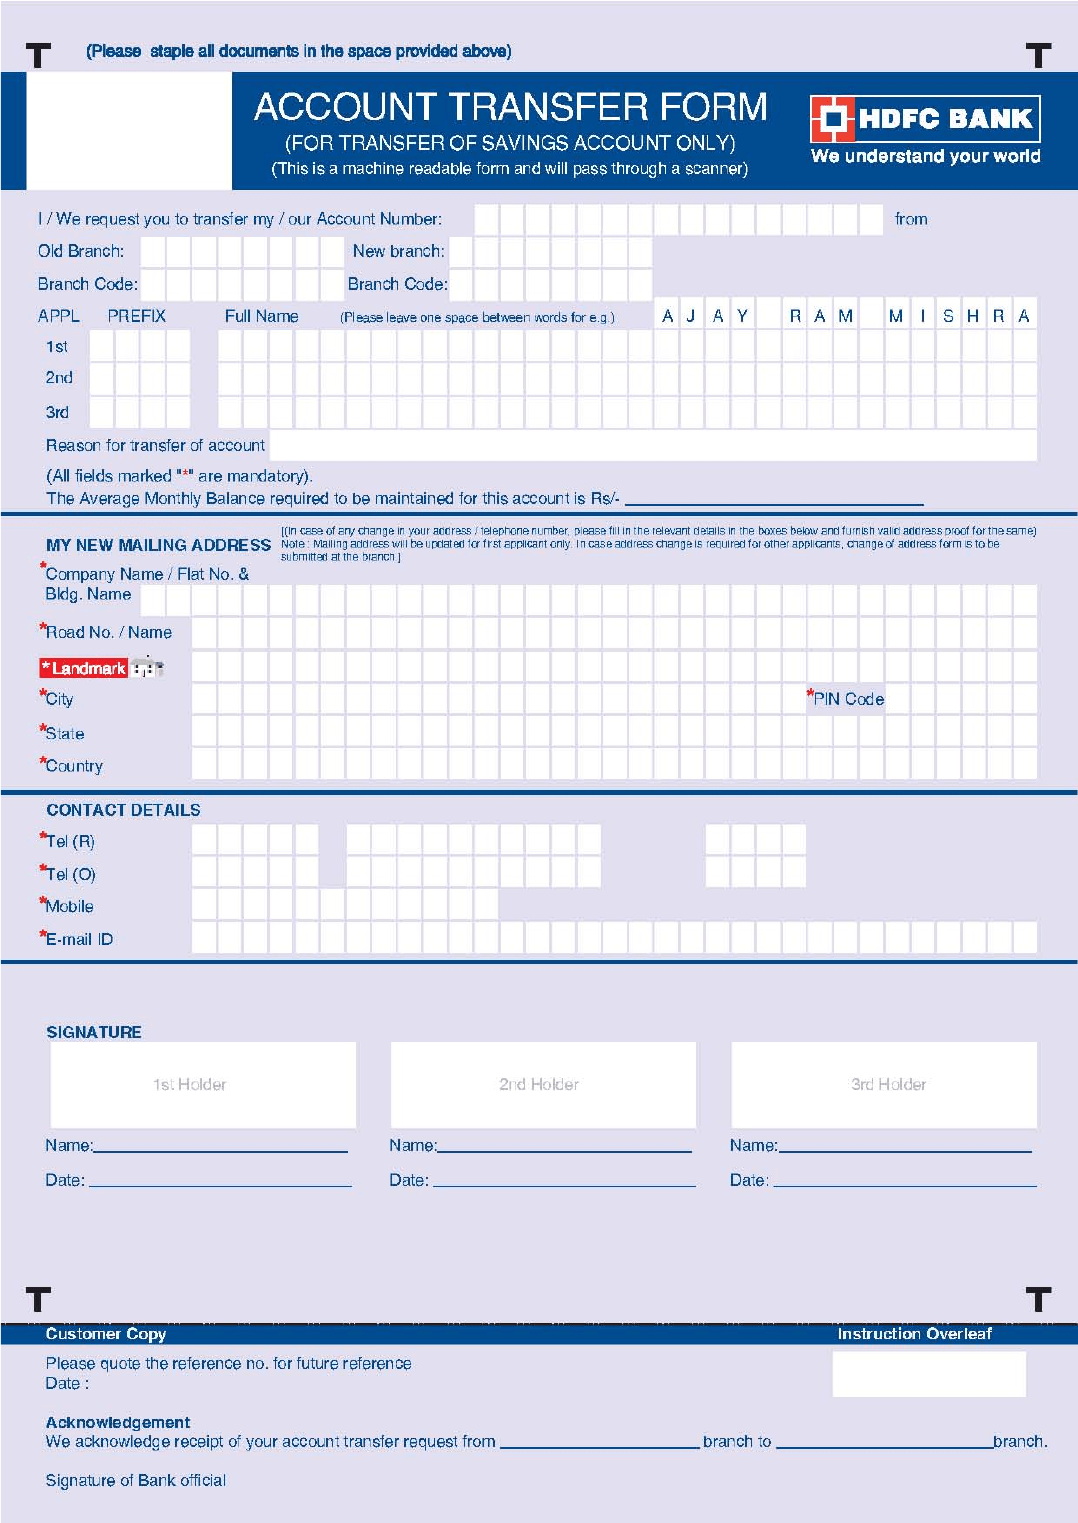 Bank Account Transfer Form HDFC BANK Free Download